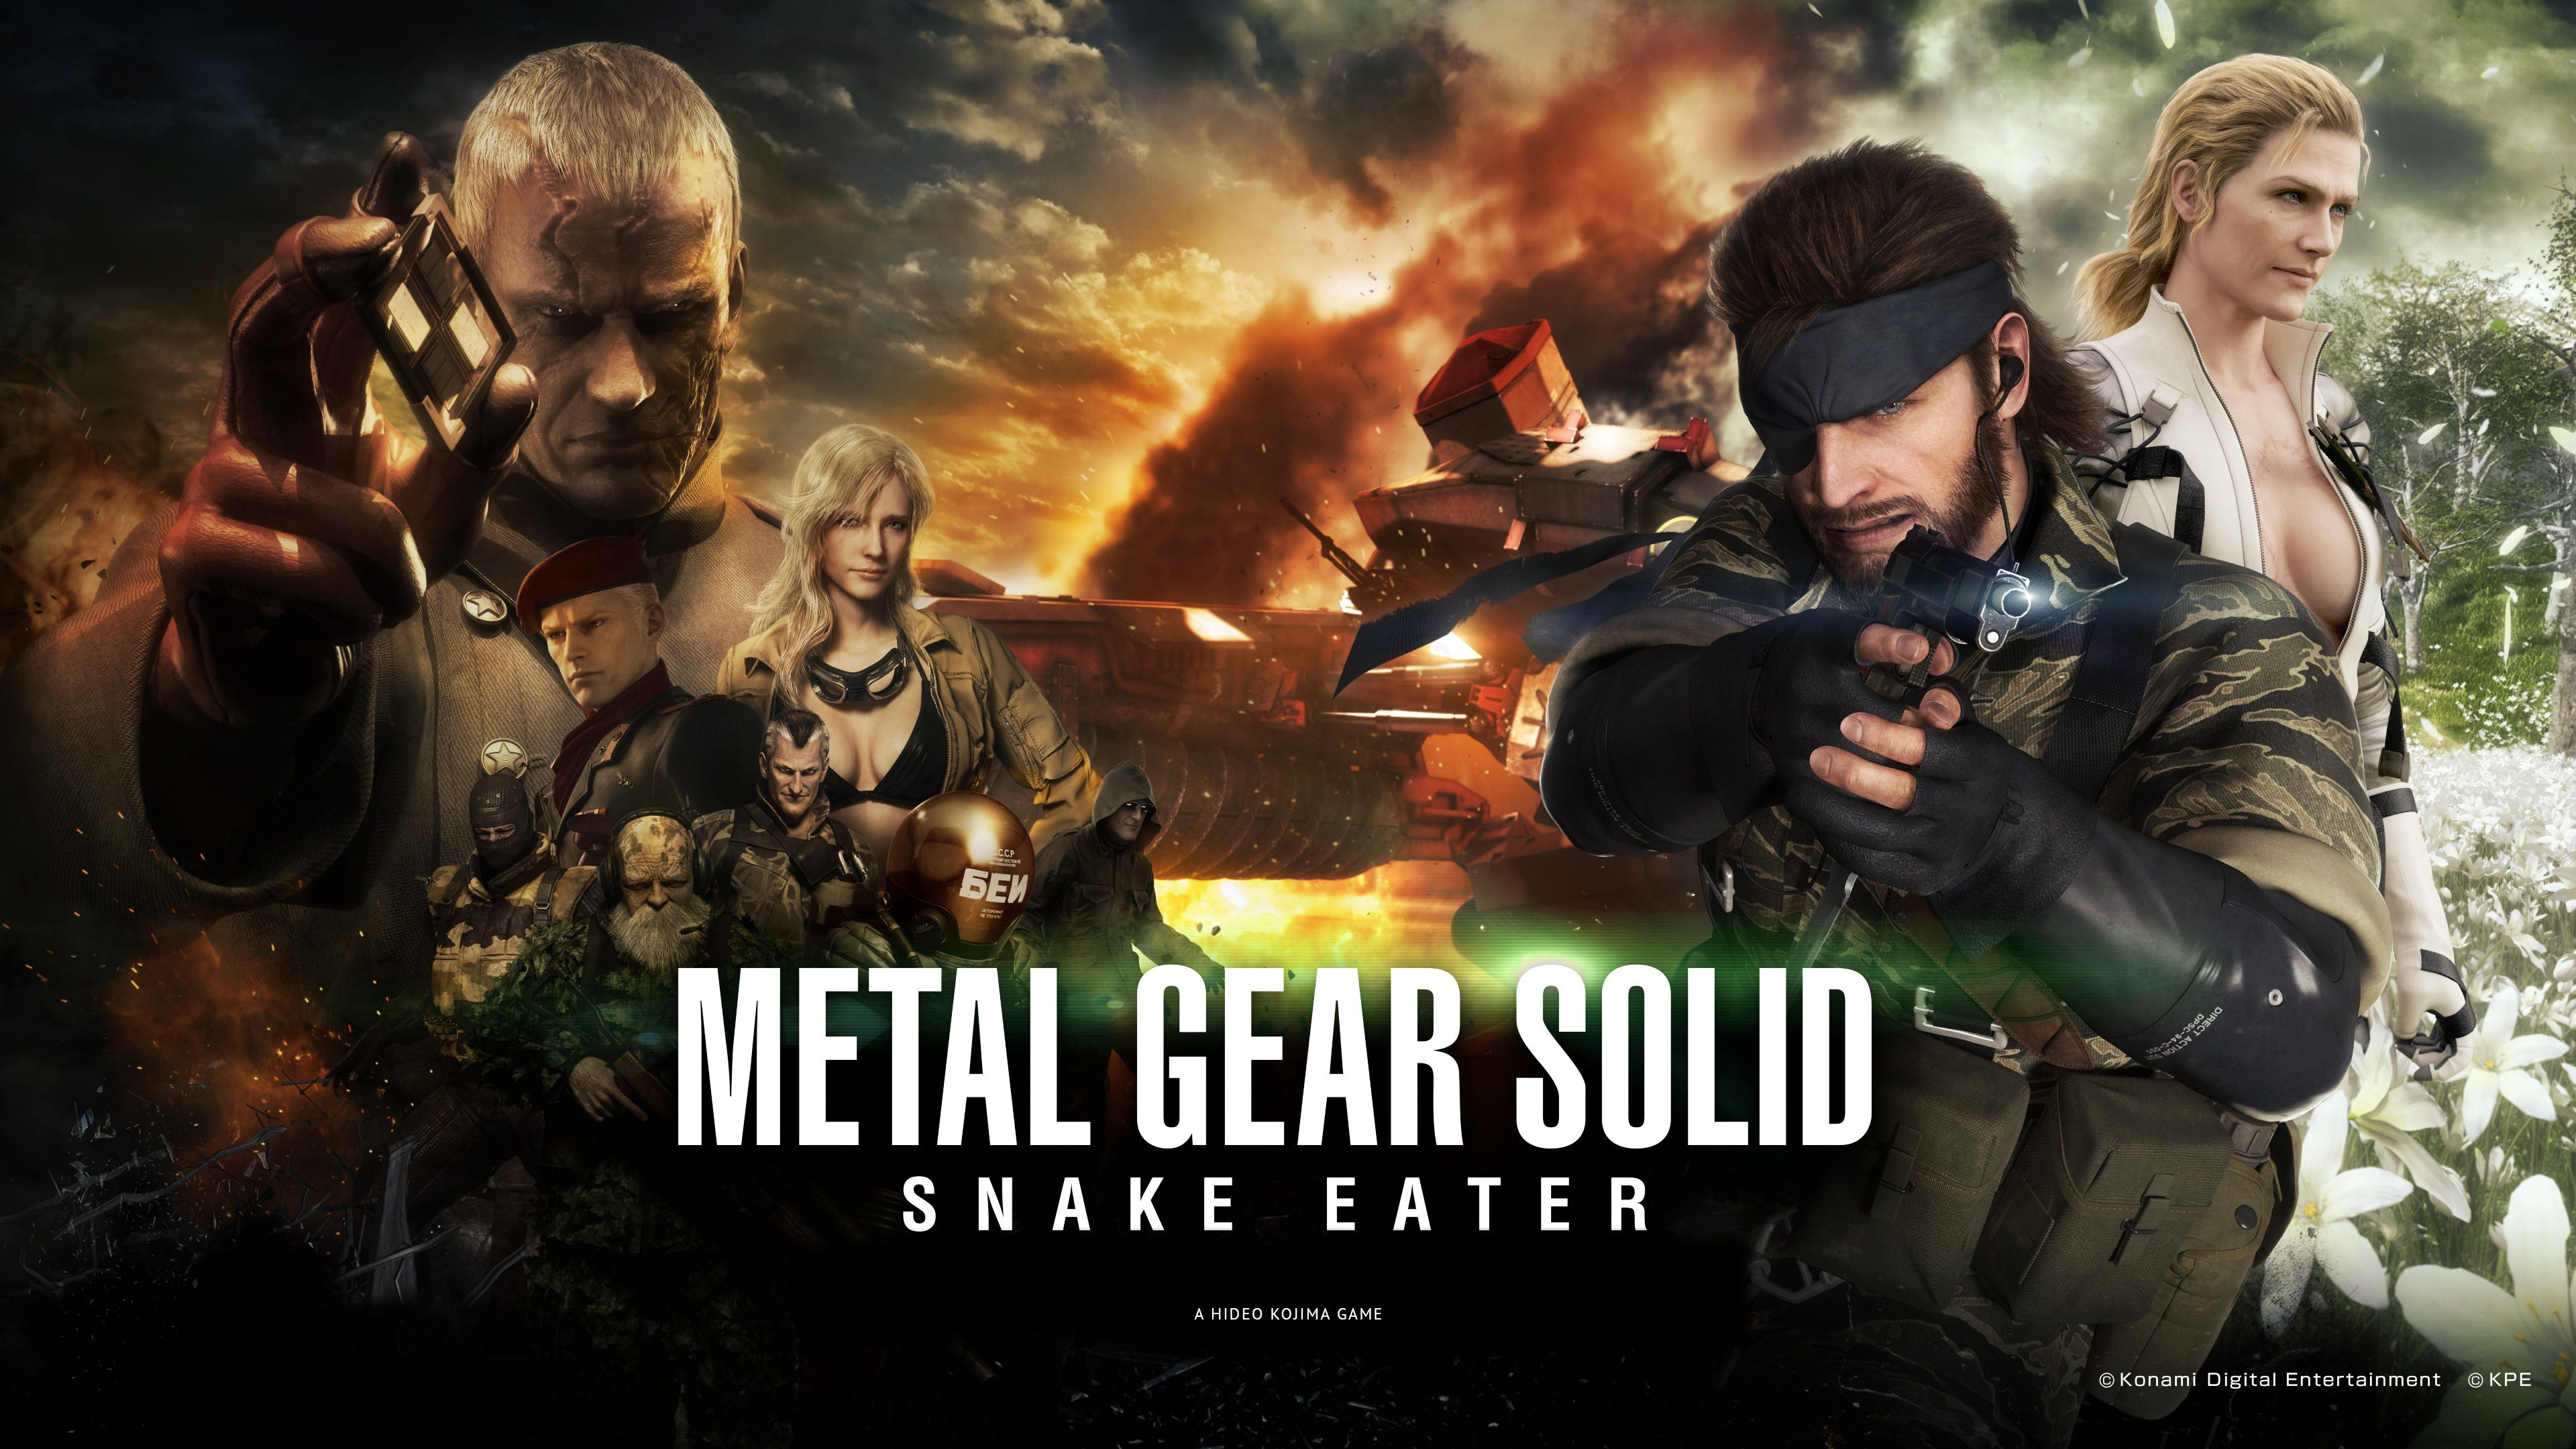 Metal Gear Solid Snake Eater Pachislot Wallpaper MetalGearSolid Mgs MGSV MetalGear Konami Cosplay PS4 Game MGSVTPP